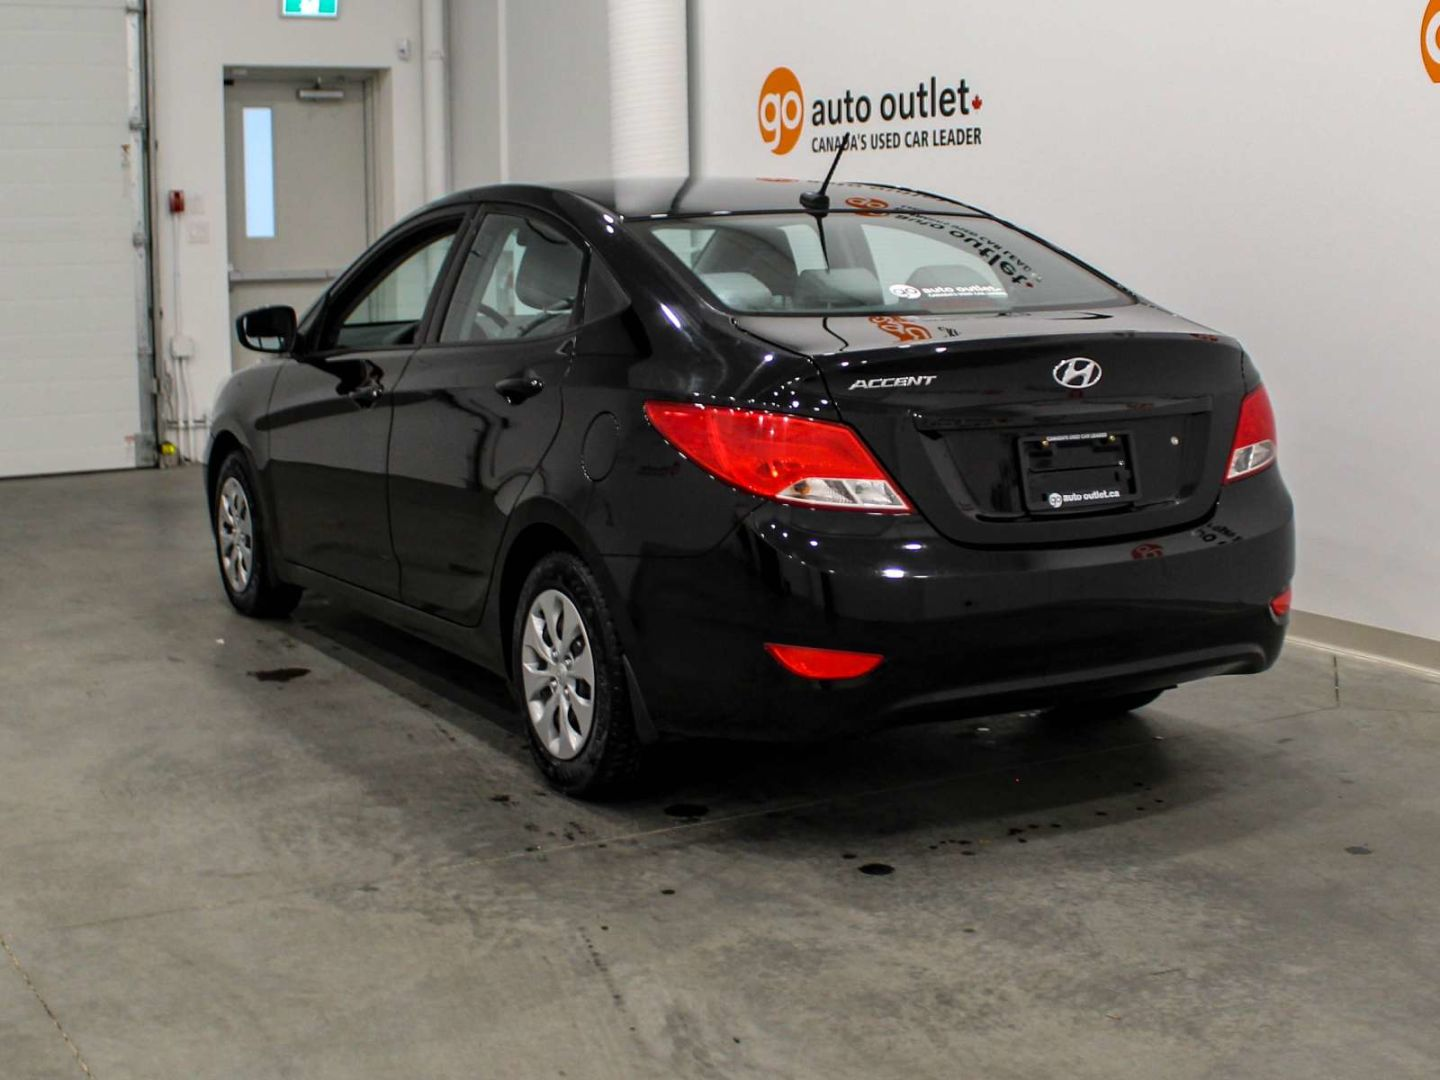 2015 Hyundai Accent GLS for sale in Edmonton, Alberta